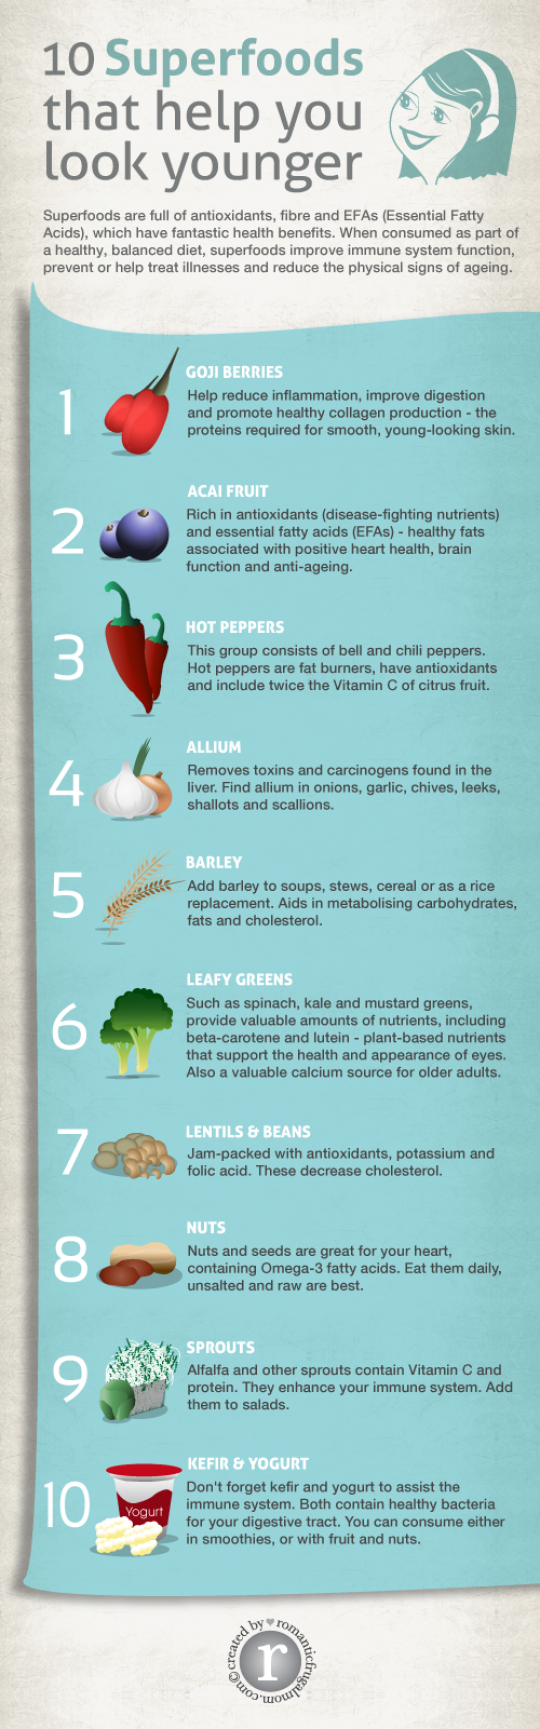 10 superfoods to make you look younger